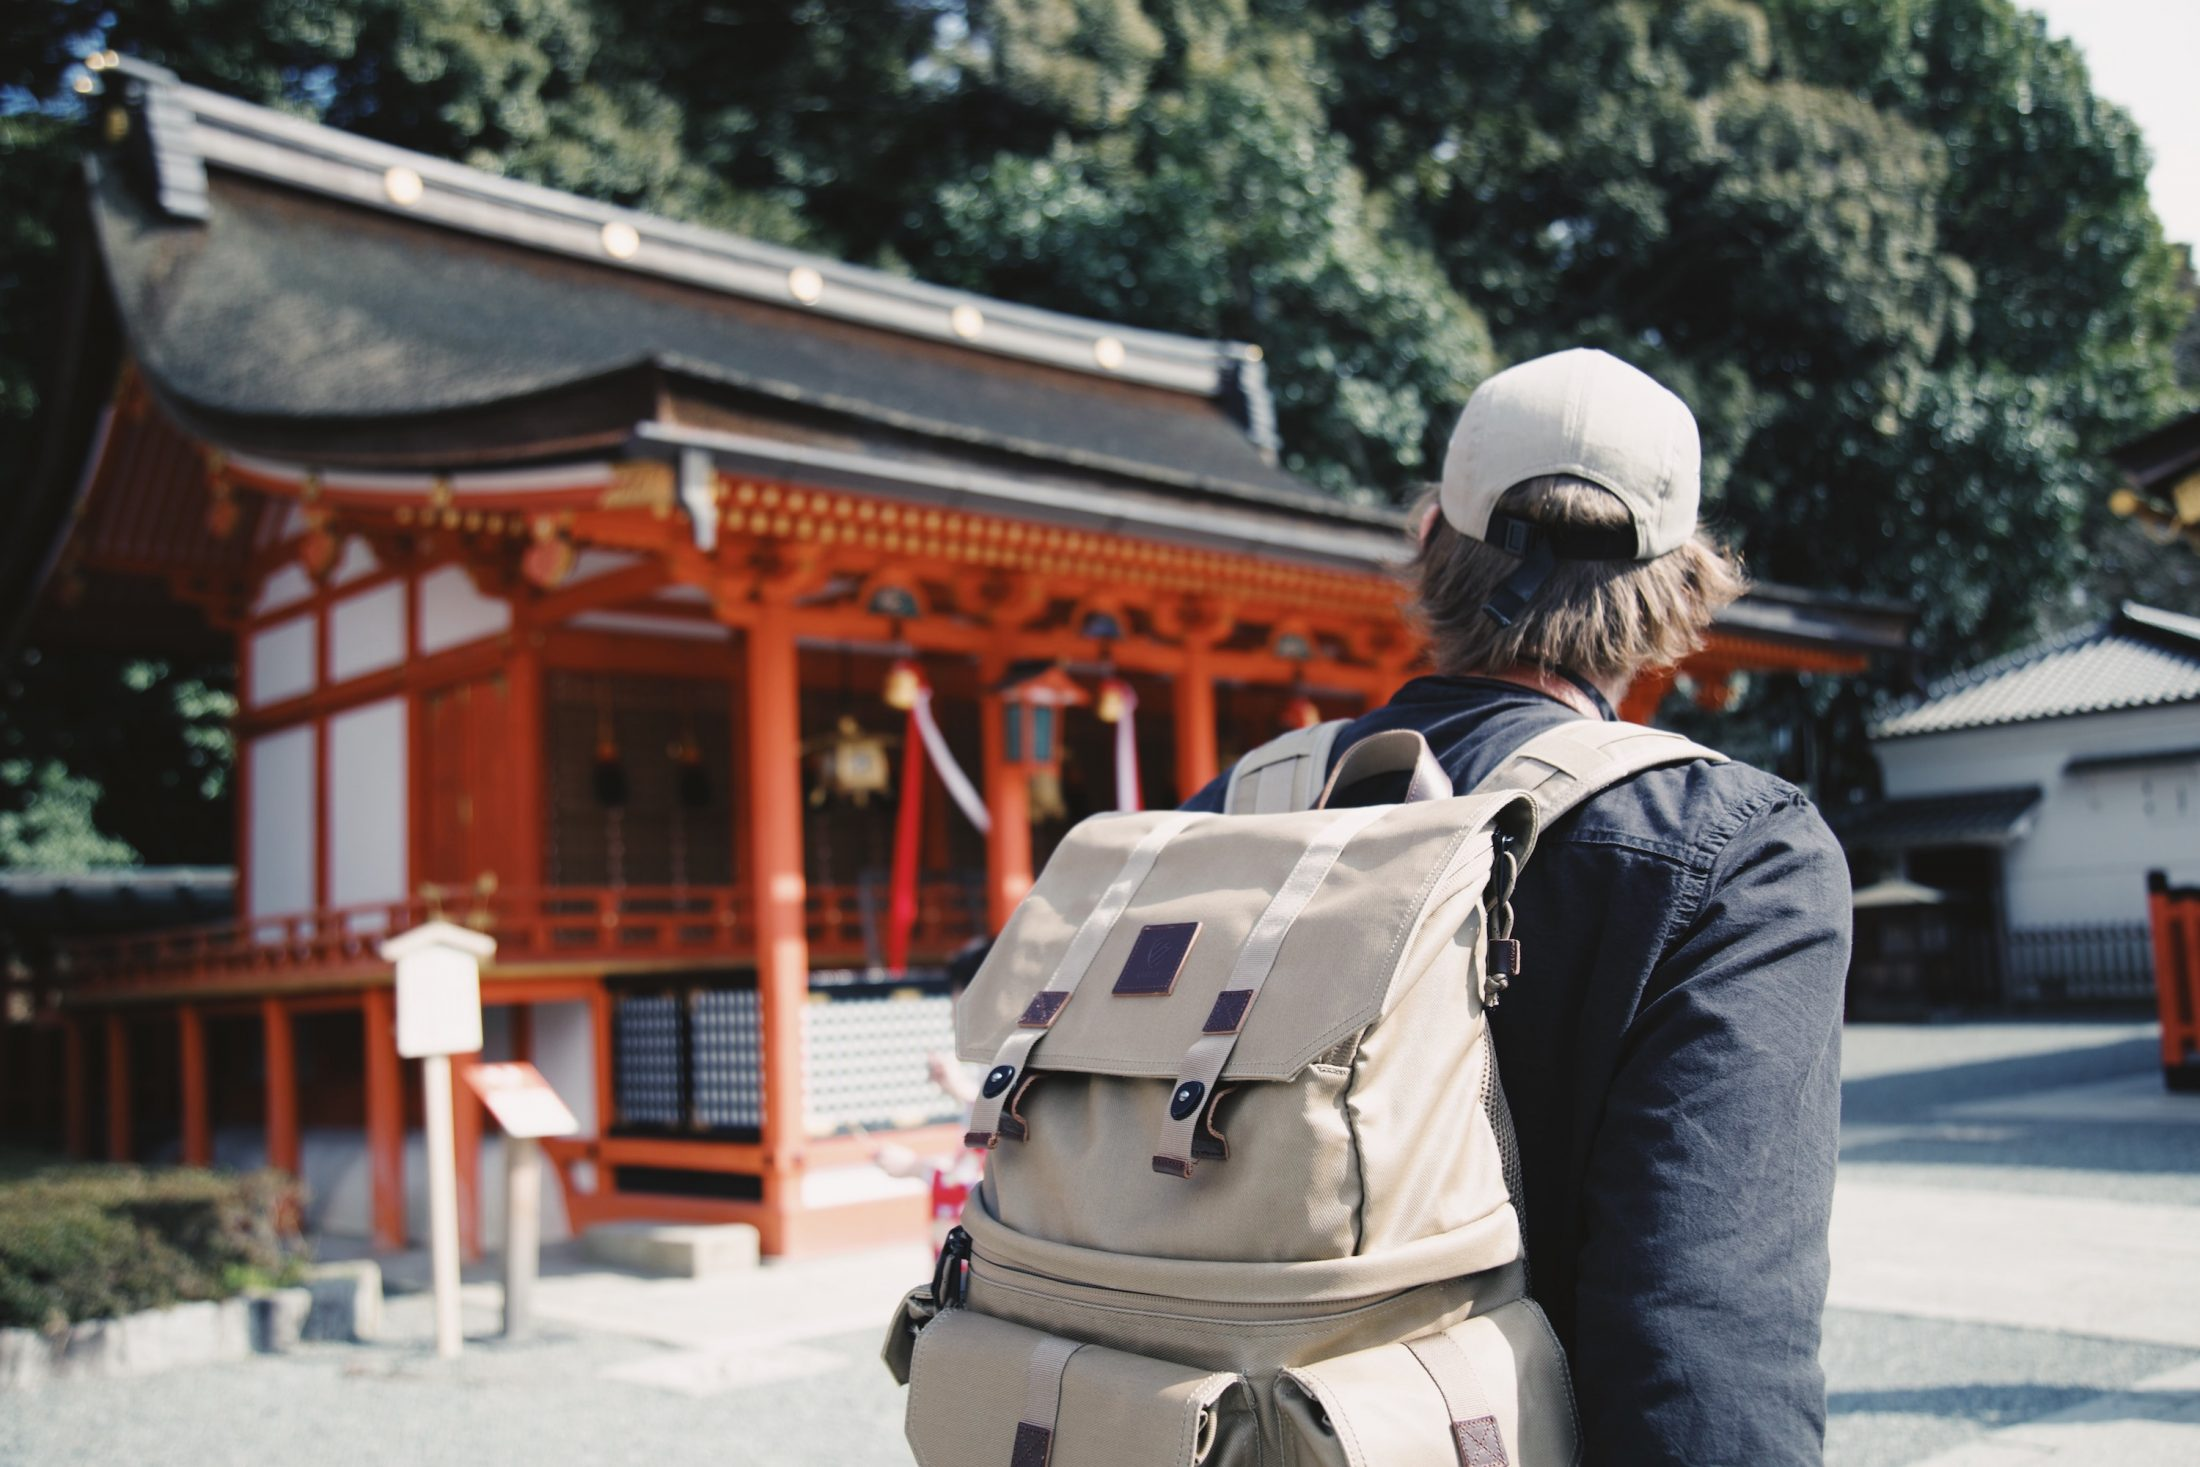 A man standing alone in front of a traditional building in Asia